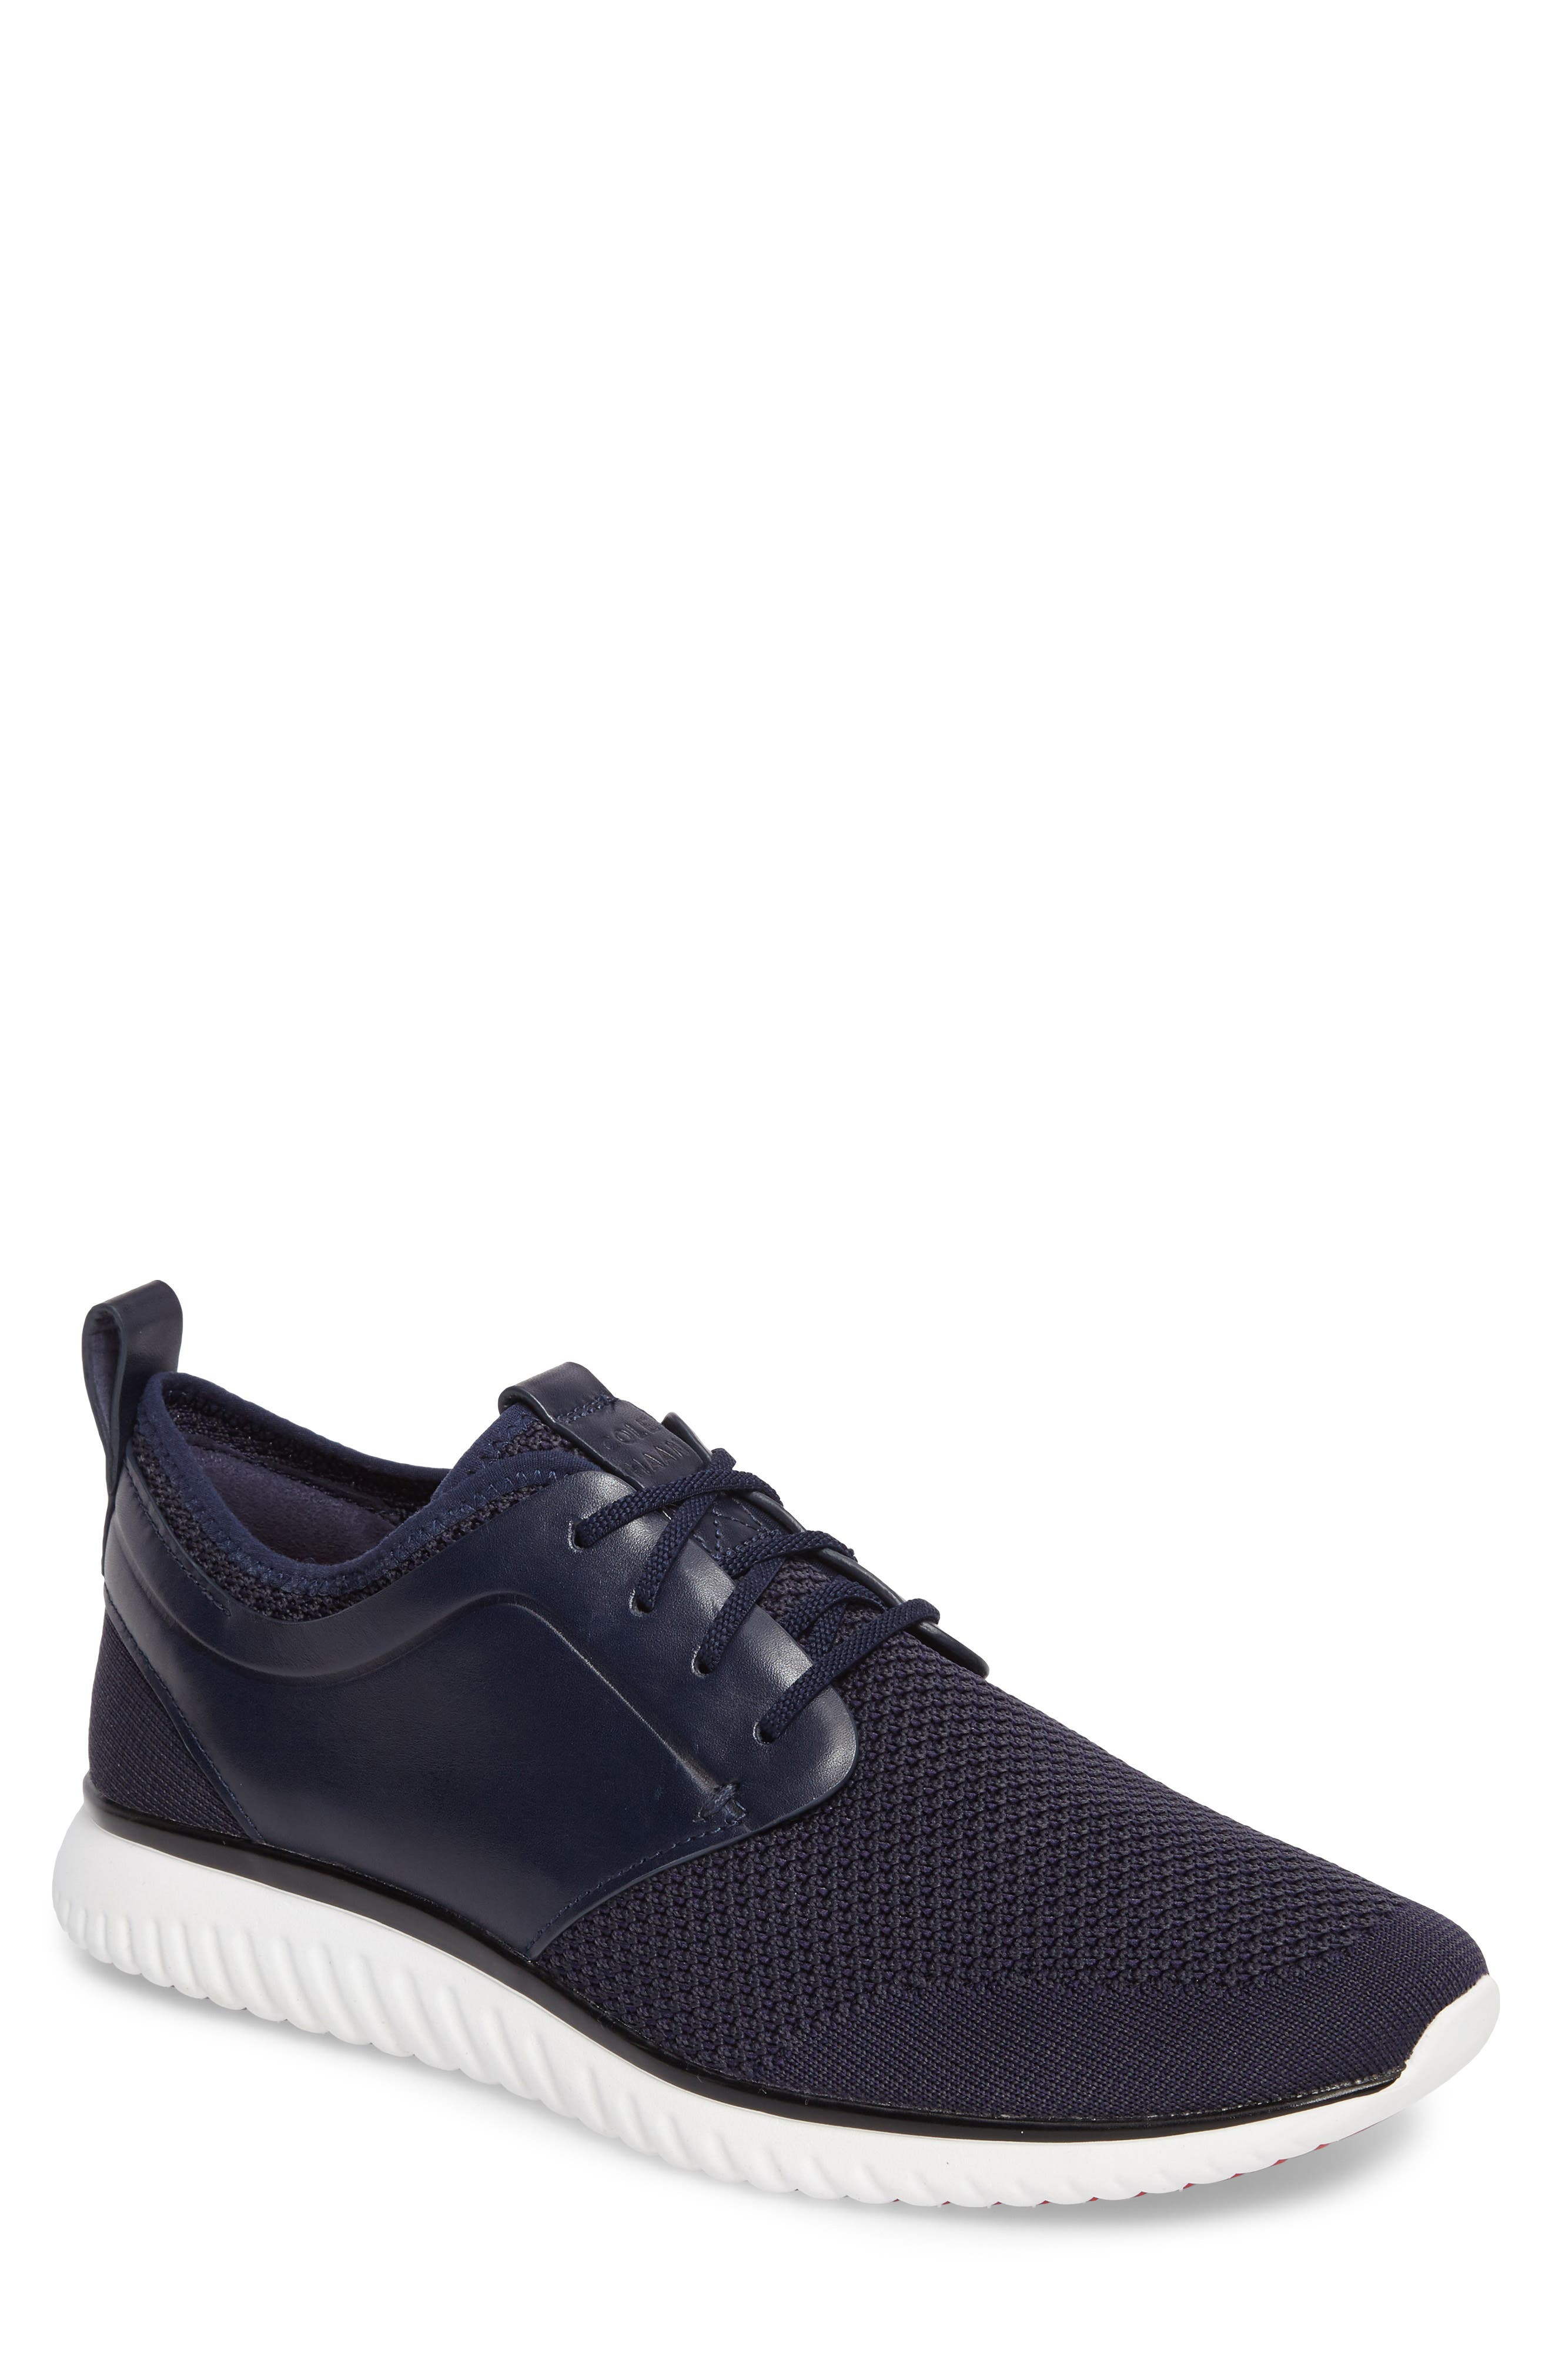 Alternate Image 1 Selected - Cole Haan 2.Zero Grand Motion Knit Oxford (Men)